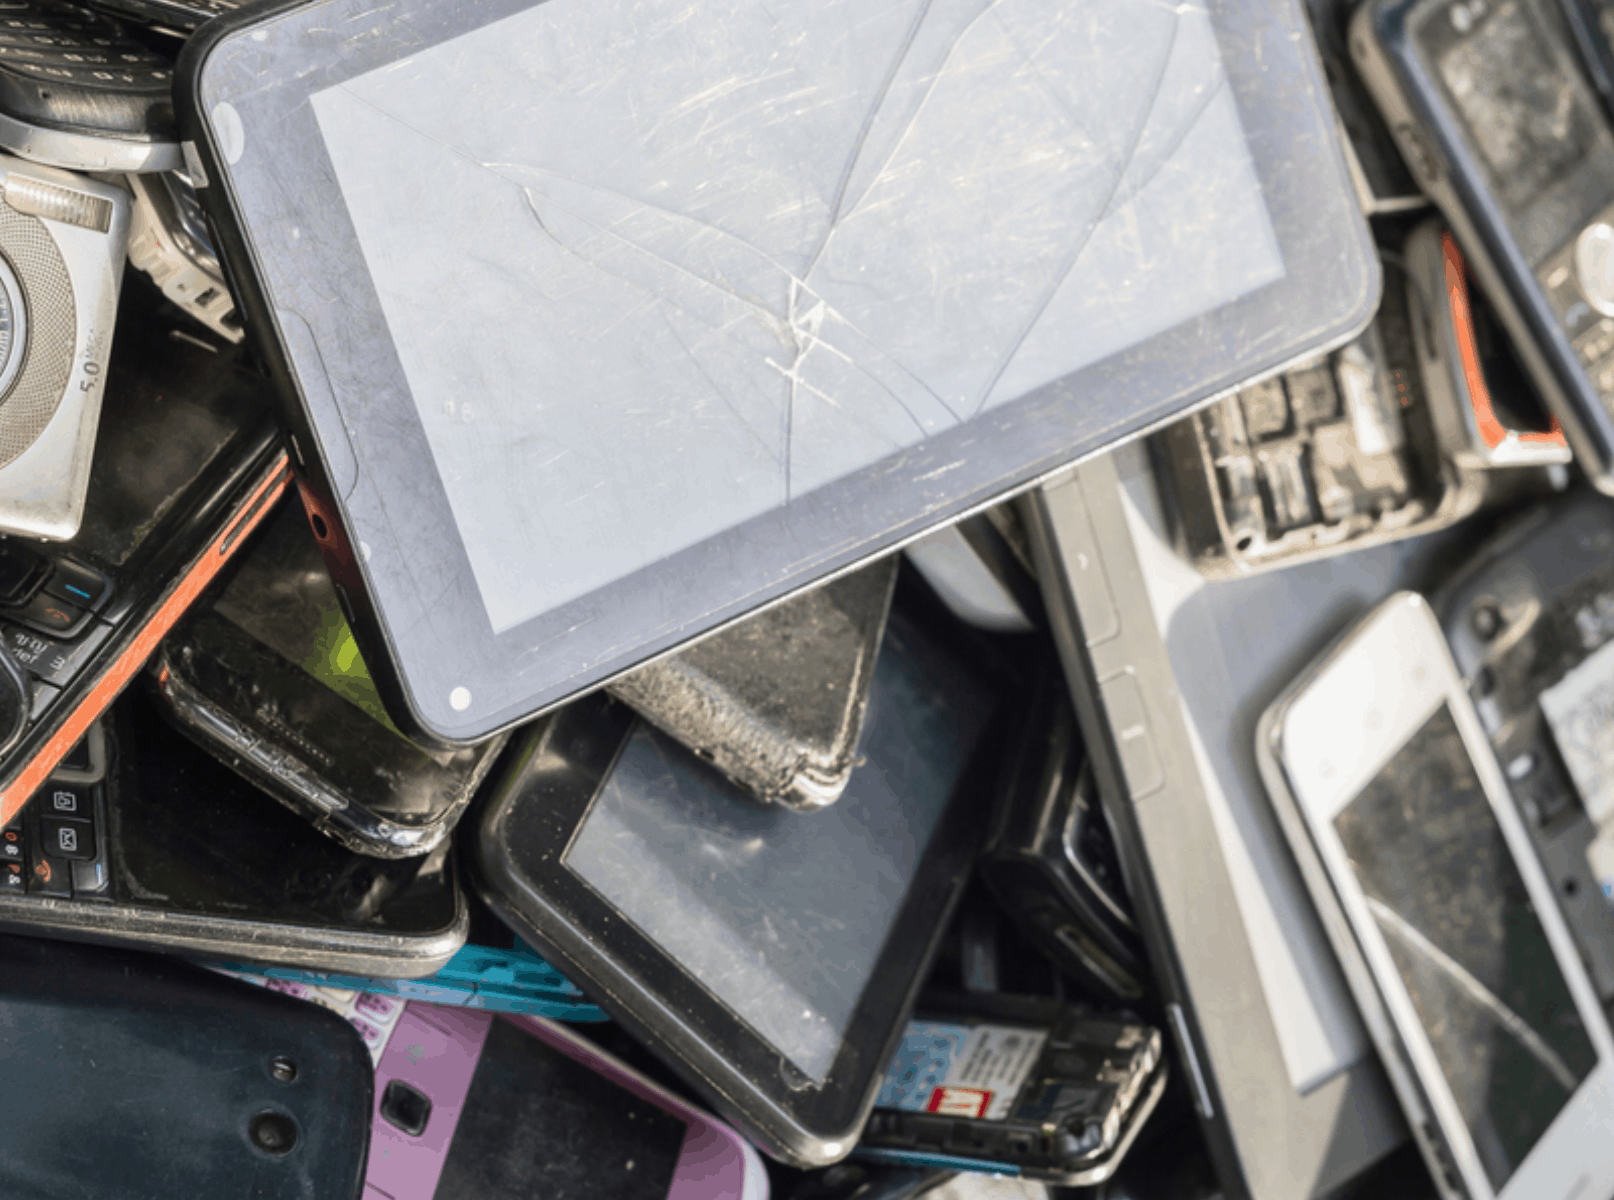 Did you know you can Sell your Broken Electronics for Cash?